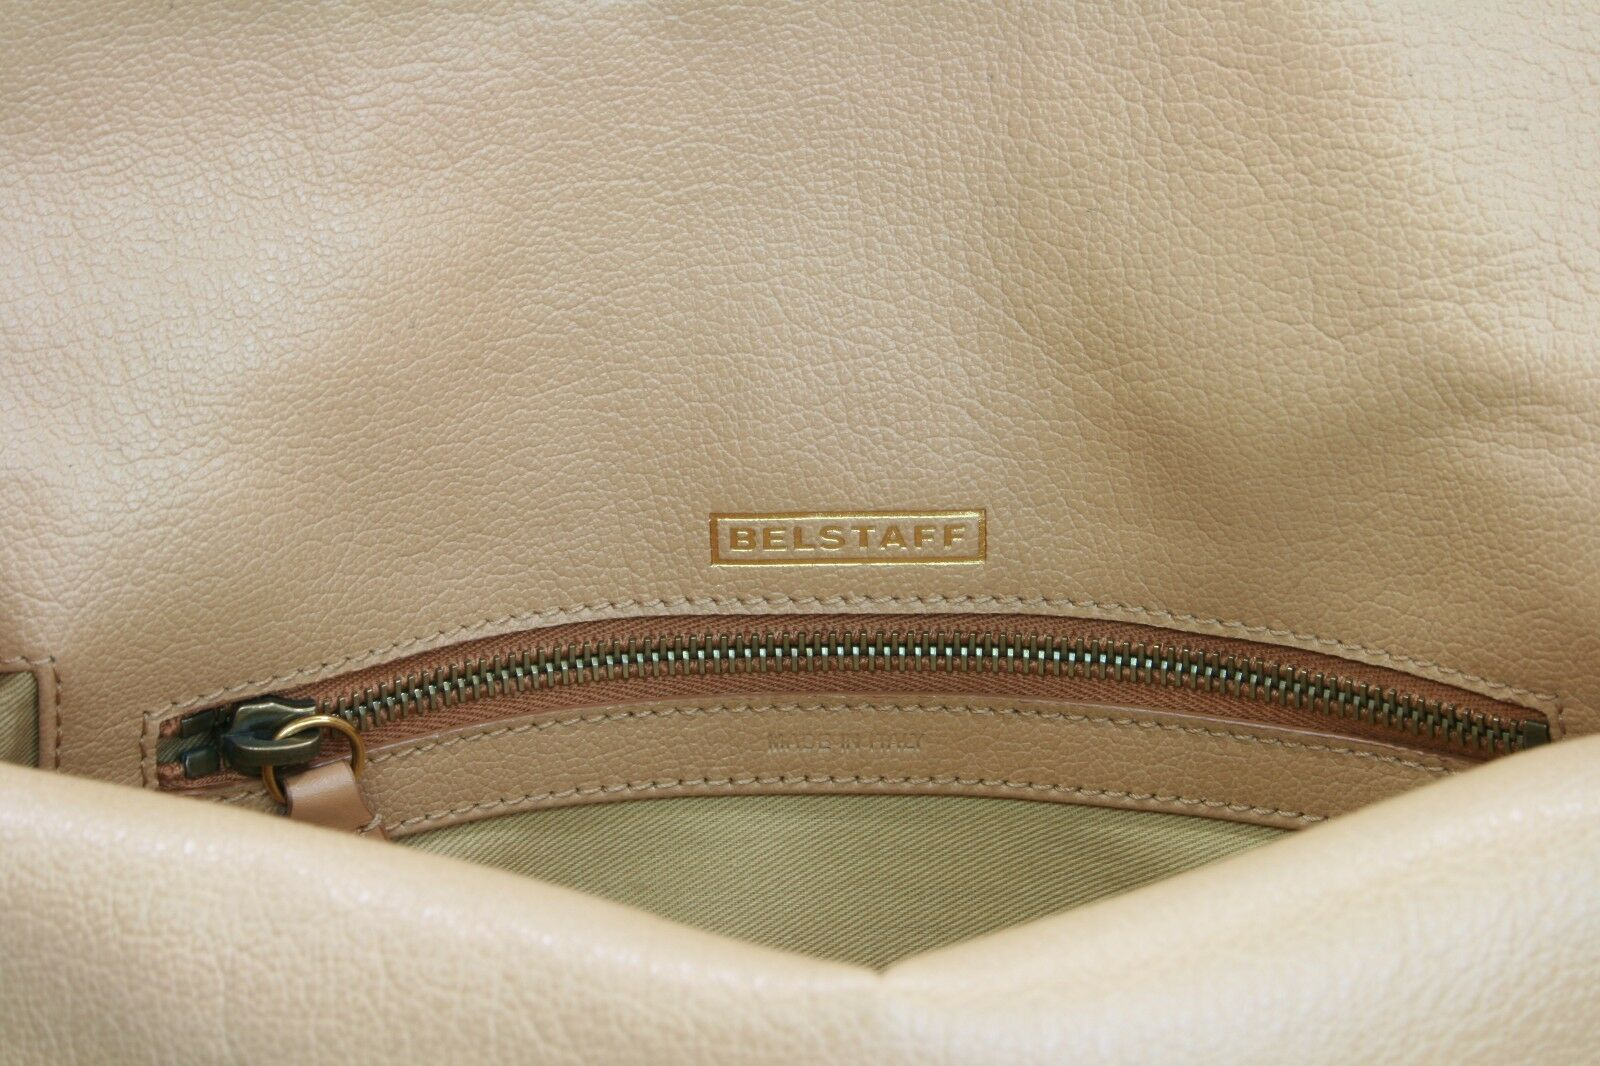 53c10996c5d Belstaff Dorchester Clutch Bag Warm Beige Size Medium Handbag for sale  online | eBay